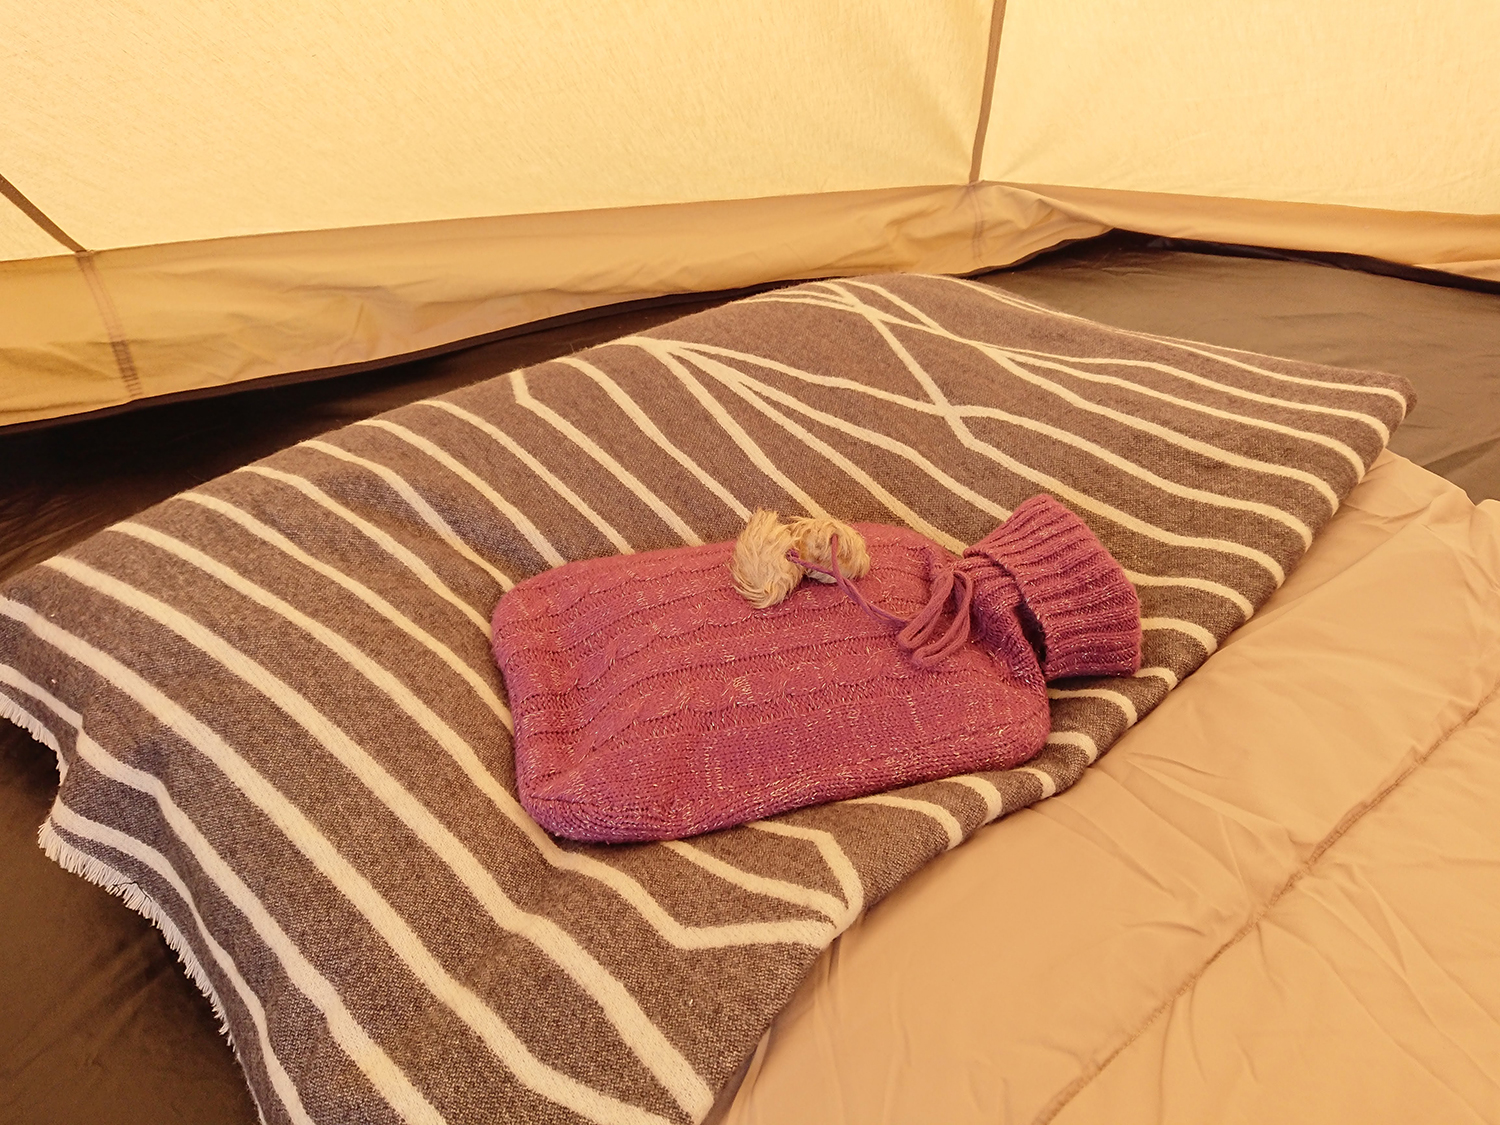 stay warm when camping